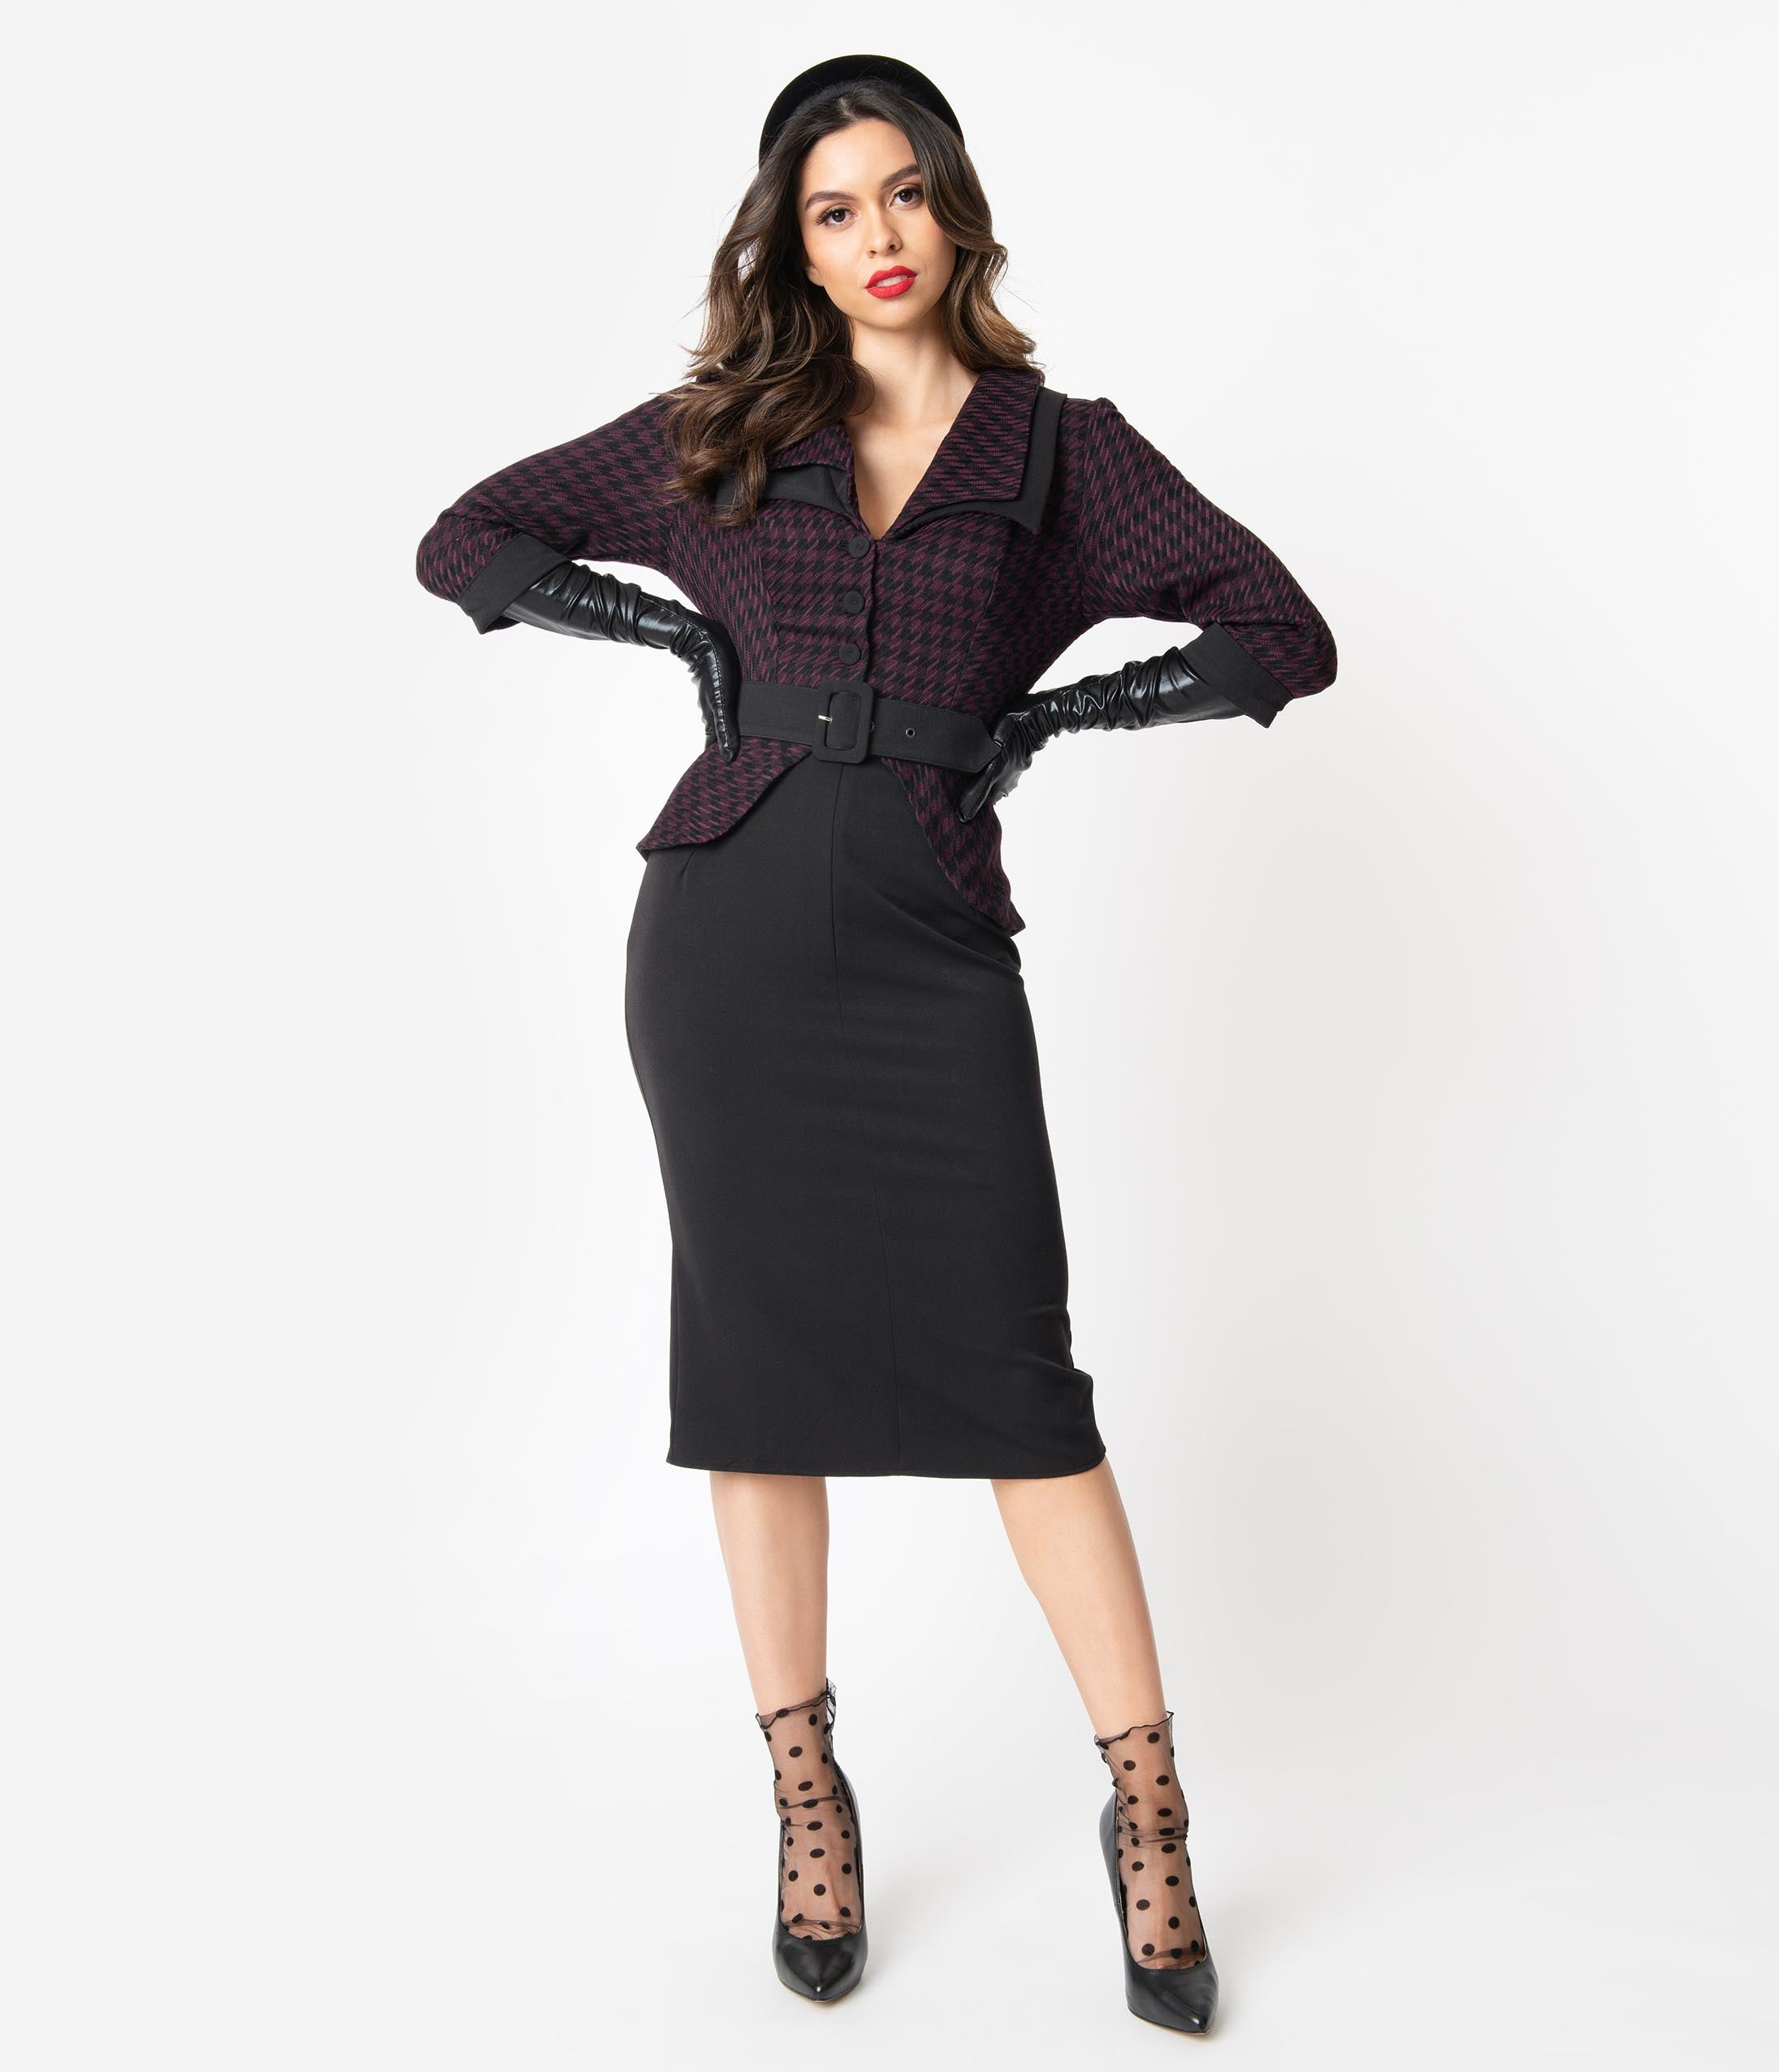 Women's 1940s Victory Suits and Utility Suits Miss Candyfloss 1940S Black  Purple Houndstooth Steffie Wiggle Dress $122.00 AT vintagedancer.com